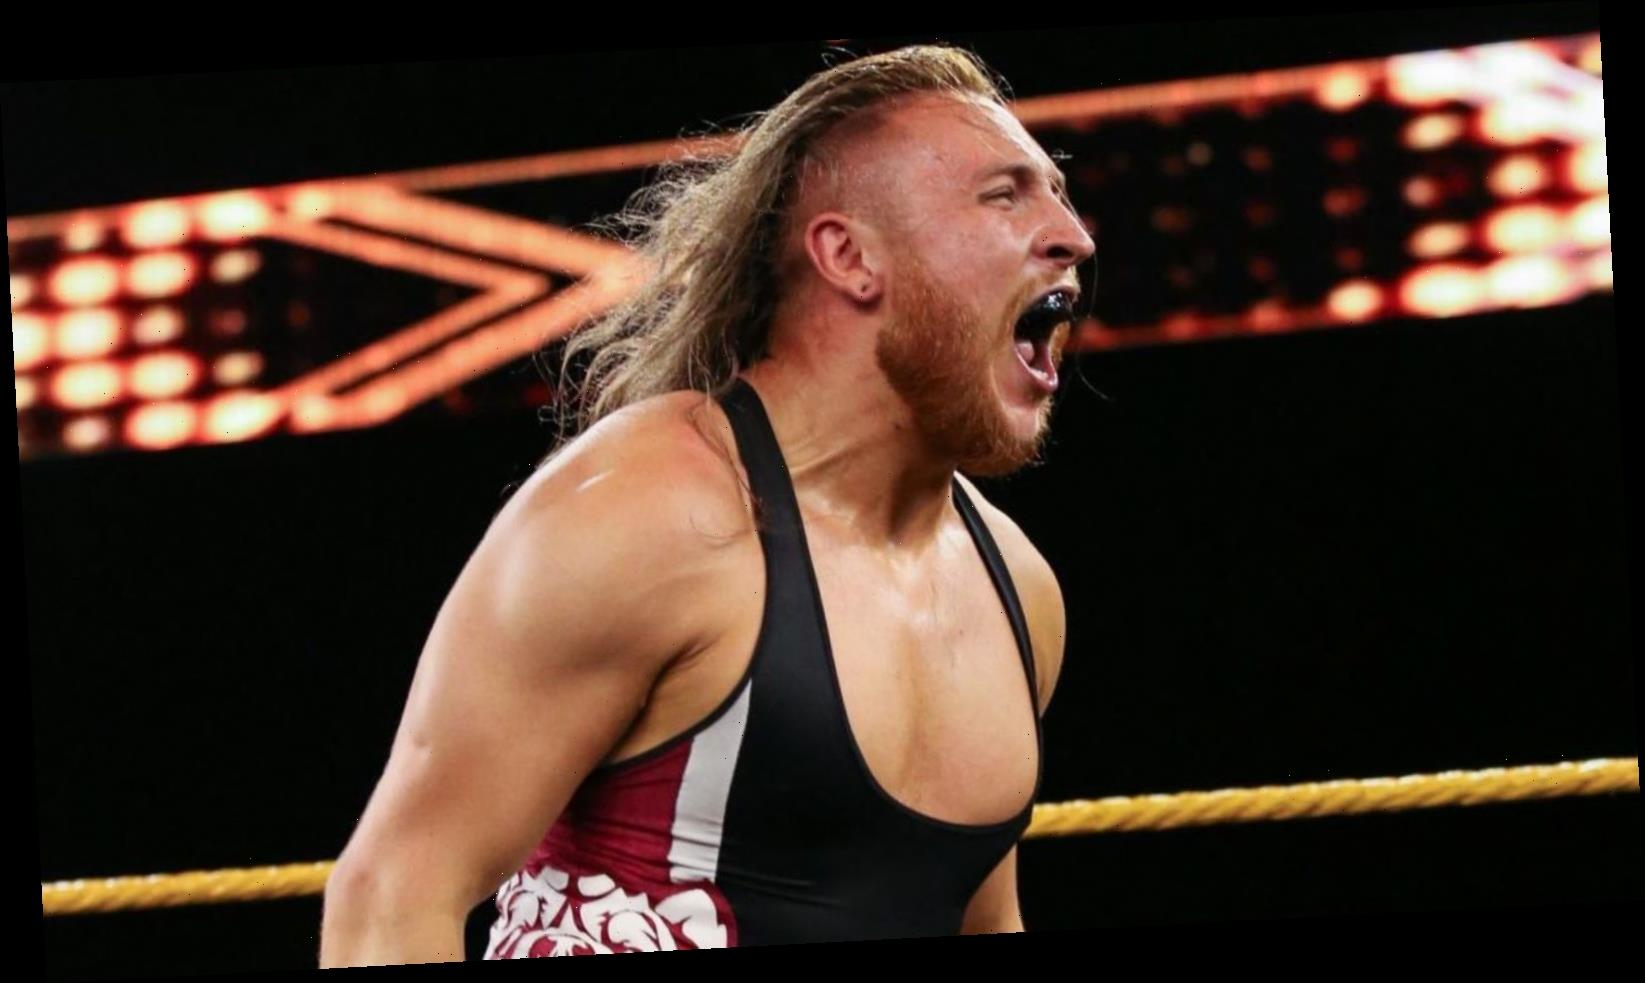 Pete Dunne: From Coventry to Florida for WWE's British Bruiserweight